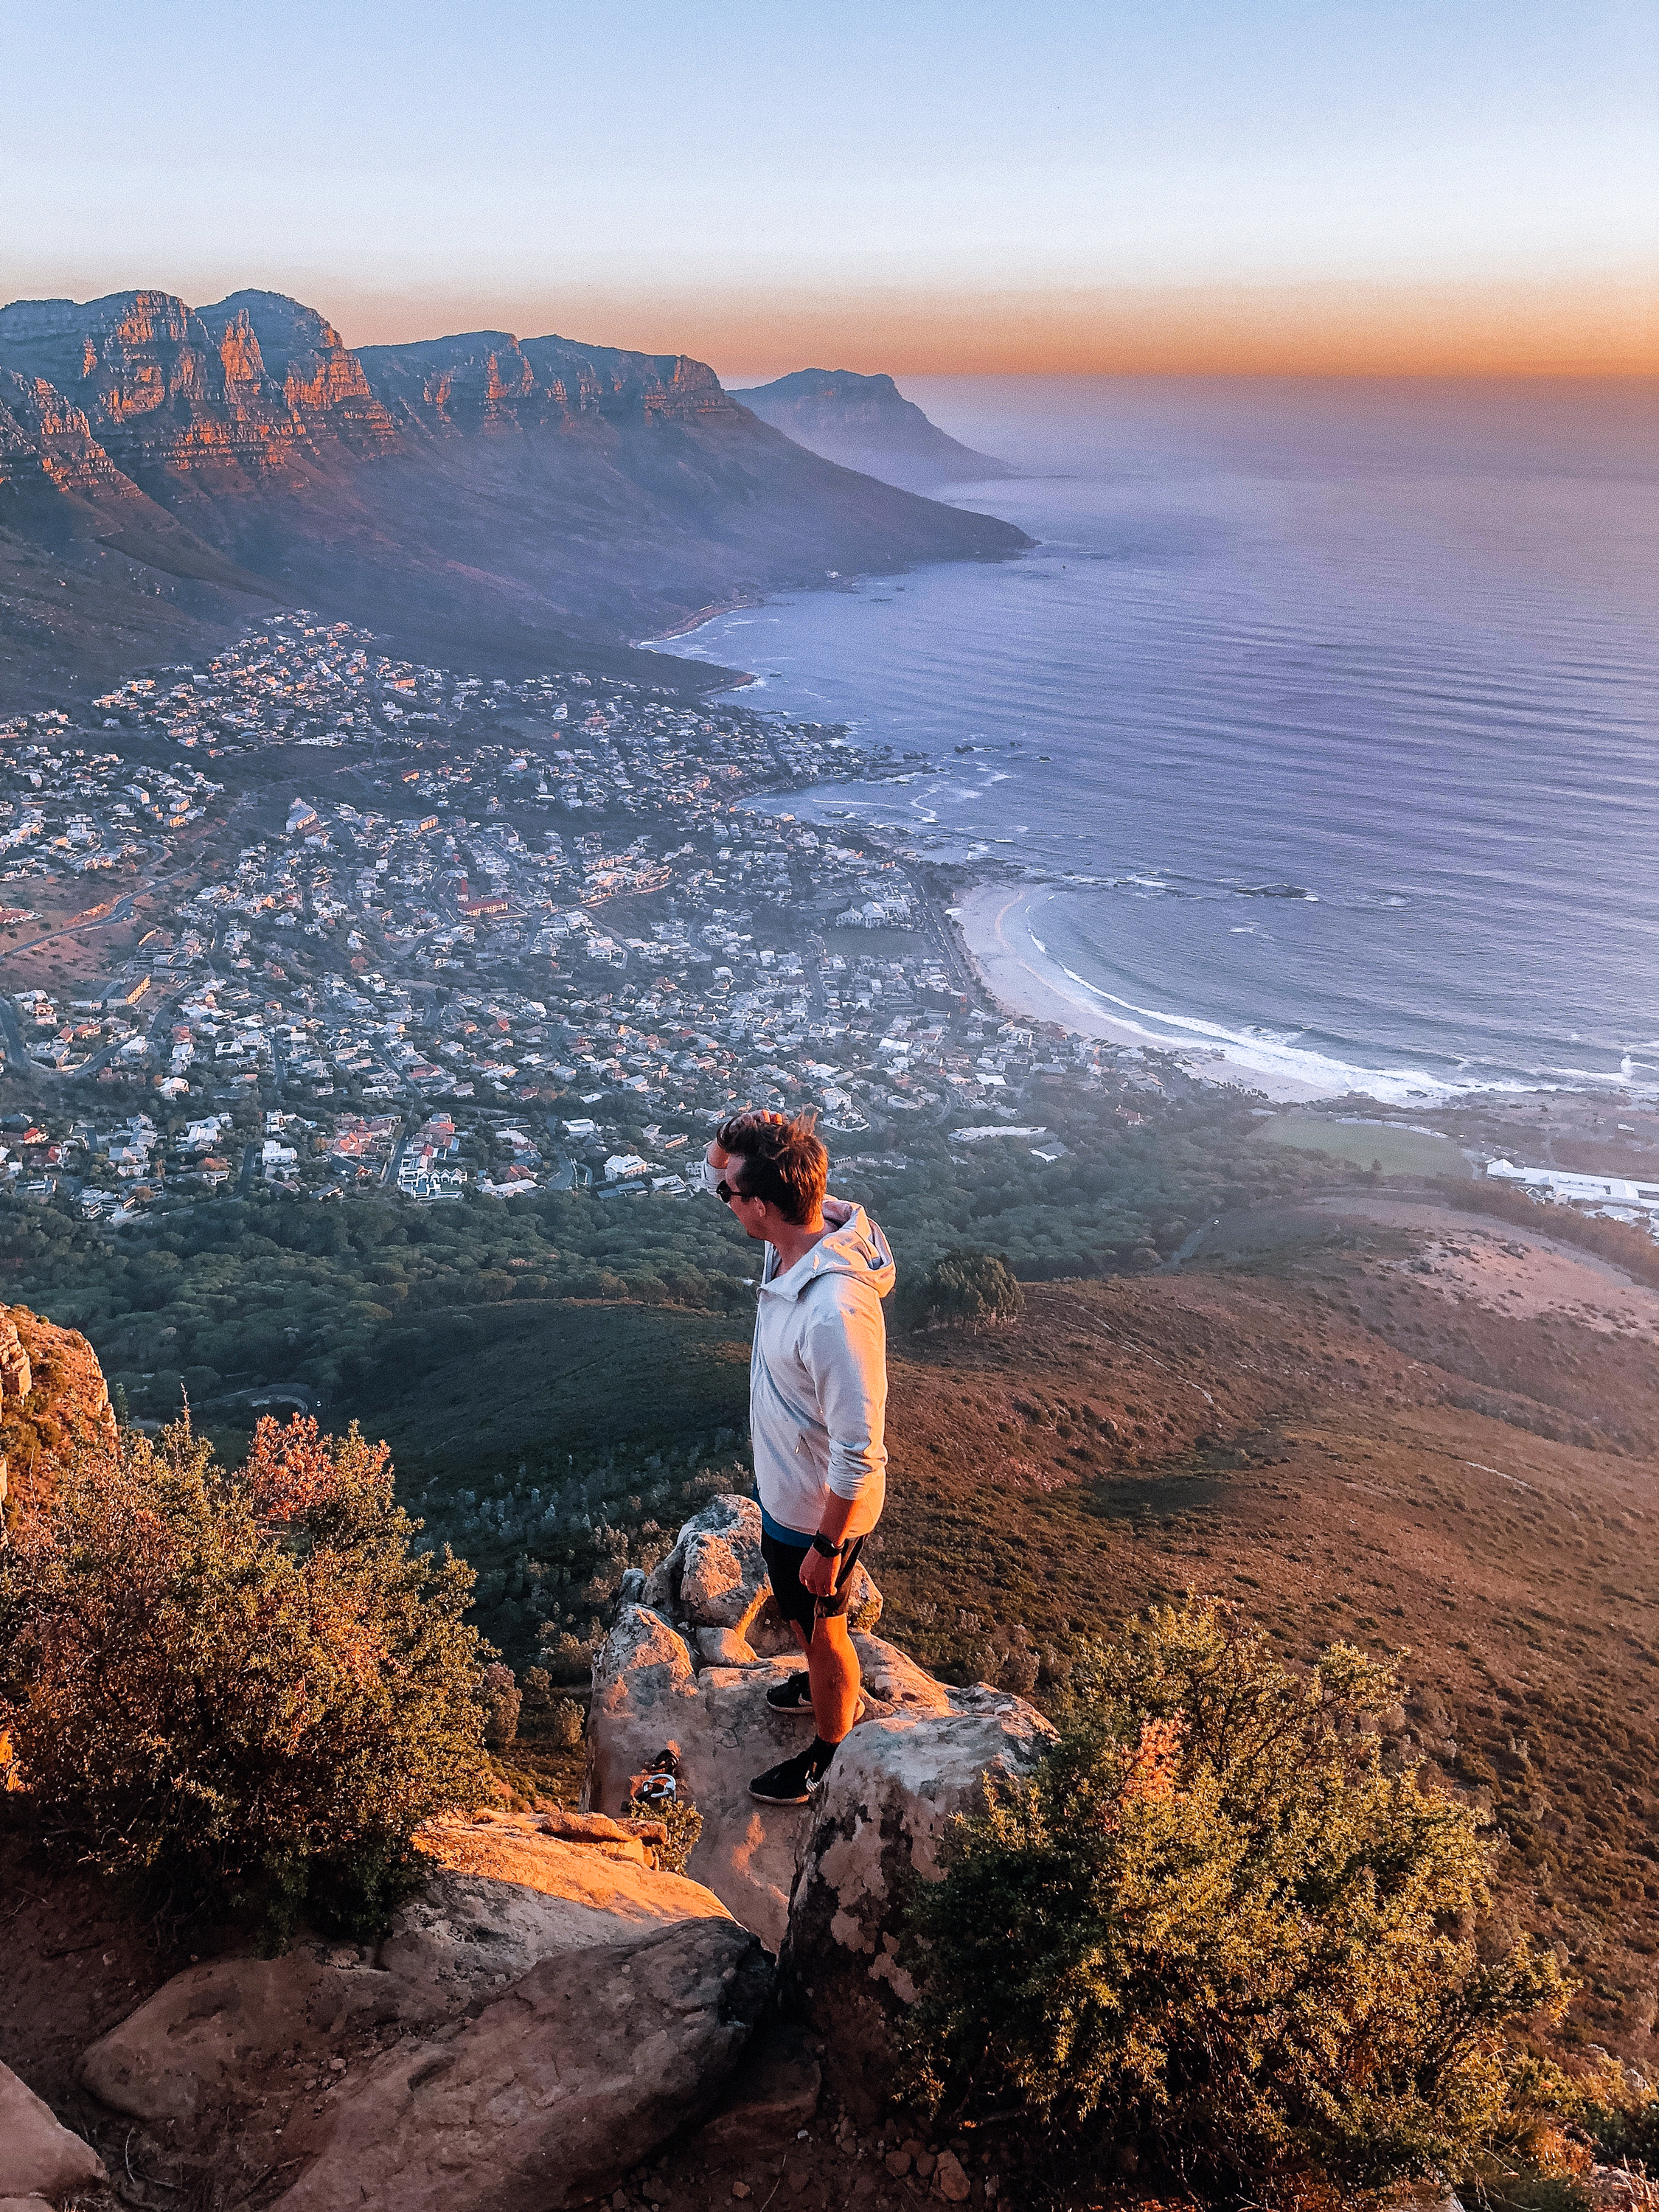 Passionate Experts - South African born-and-bred we believe there is no one better to show you the best of this glorious country. That is why we work with our extensive network of contacts to curate memorable experiences and fascinating itineraries. We love our country and want you to fall in love with it too, exploring everything from national parks to the Winelands and Cape Town.